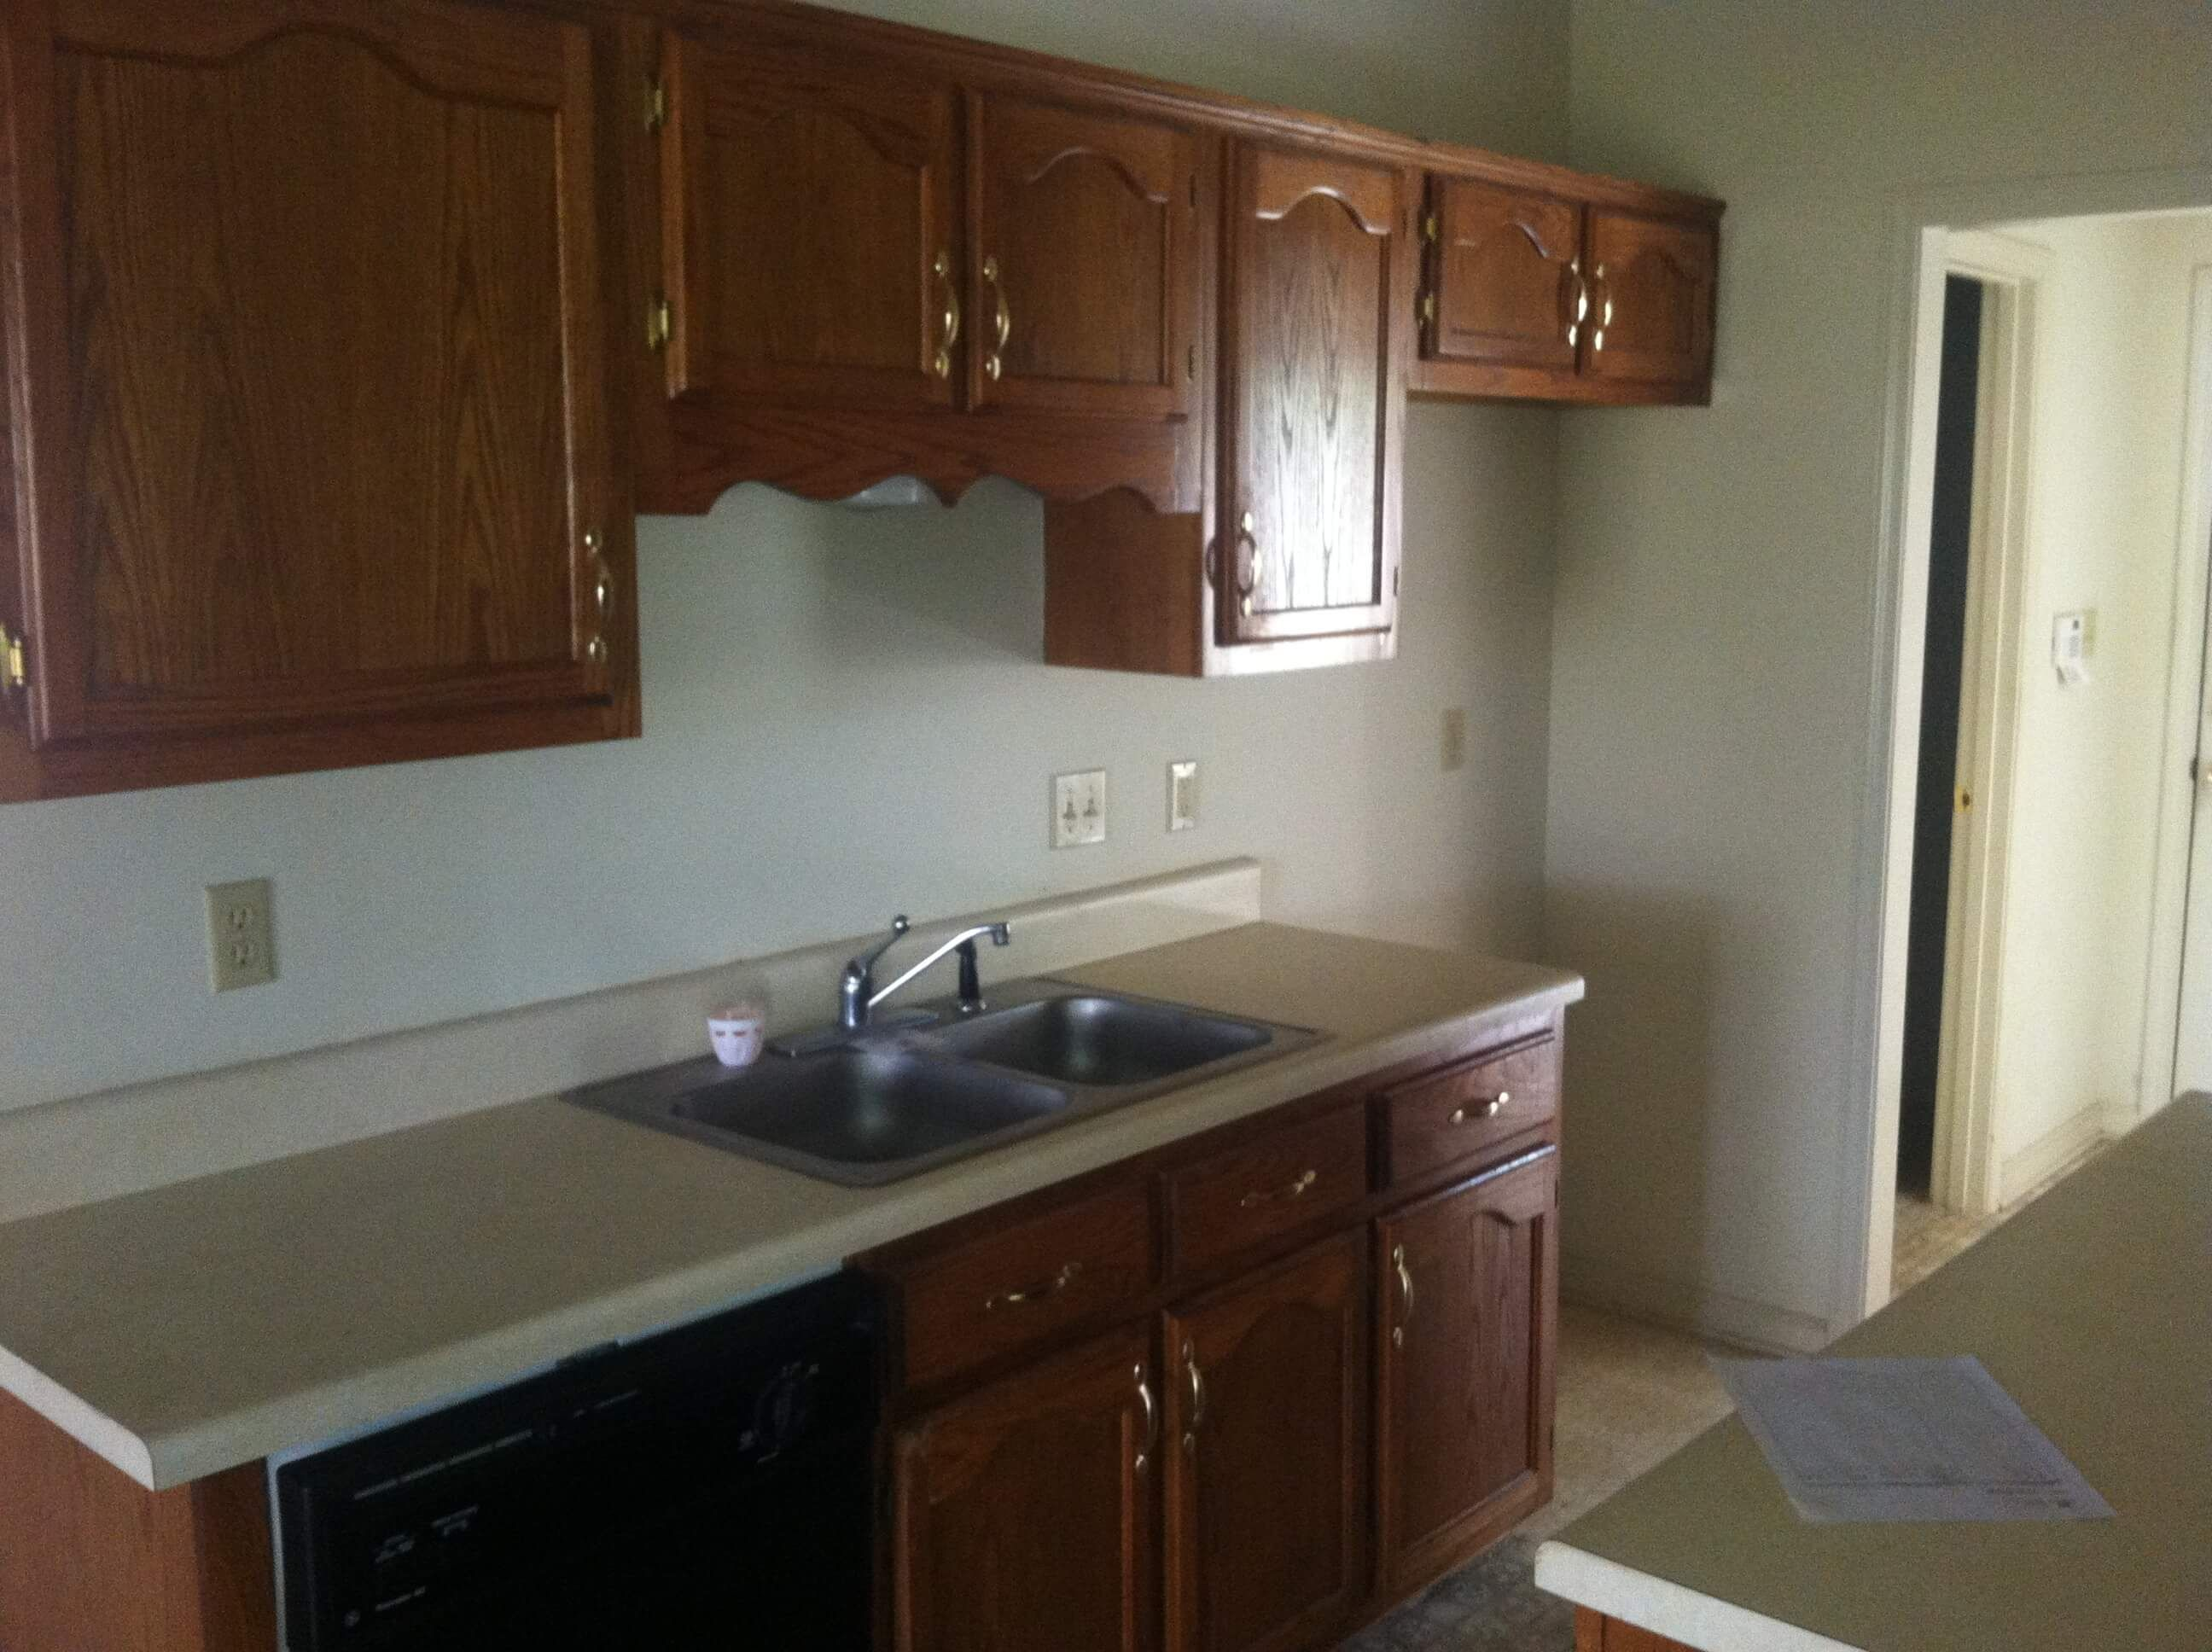 How to Remodel a 20 Year Old Kitchen for Less Than $3,000 ...  Year Old Kitchen Cabinets on old kitchen windows, old brick kitchen, old black kitchen, old white kitchen, old kitchen sinks, old kitchen cupboards, old kitchen light, old time kitchen, old kitchen pantries, old kitchen safes, old kitchen photography, old farmhouse kitchens, old kitchen redesign, old kitchen shelves, old custom kitchen, old kitchen storage, old kitchen ideas, old kitchen sideboards, old ikea kitchen, old kitchen furniture,